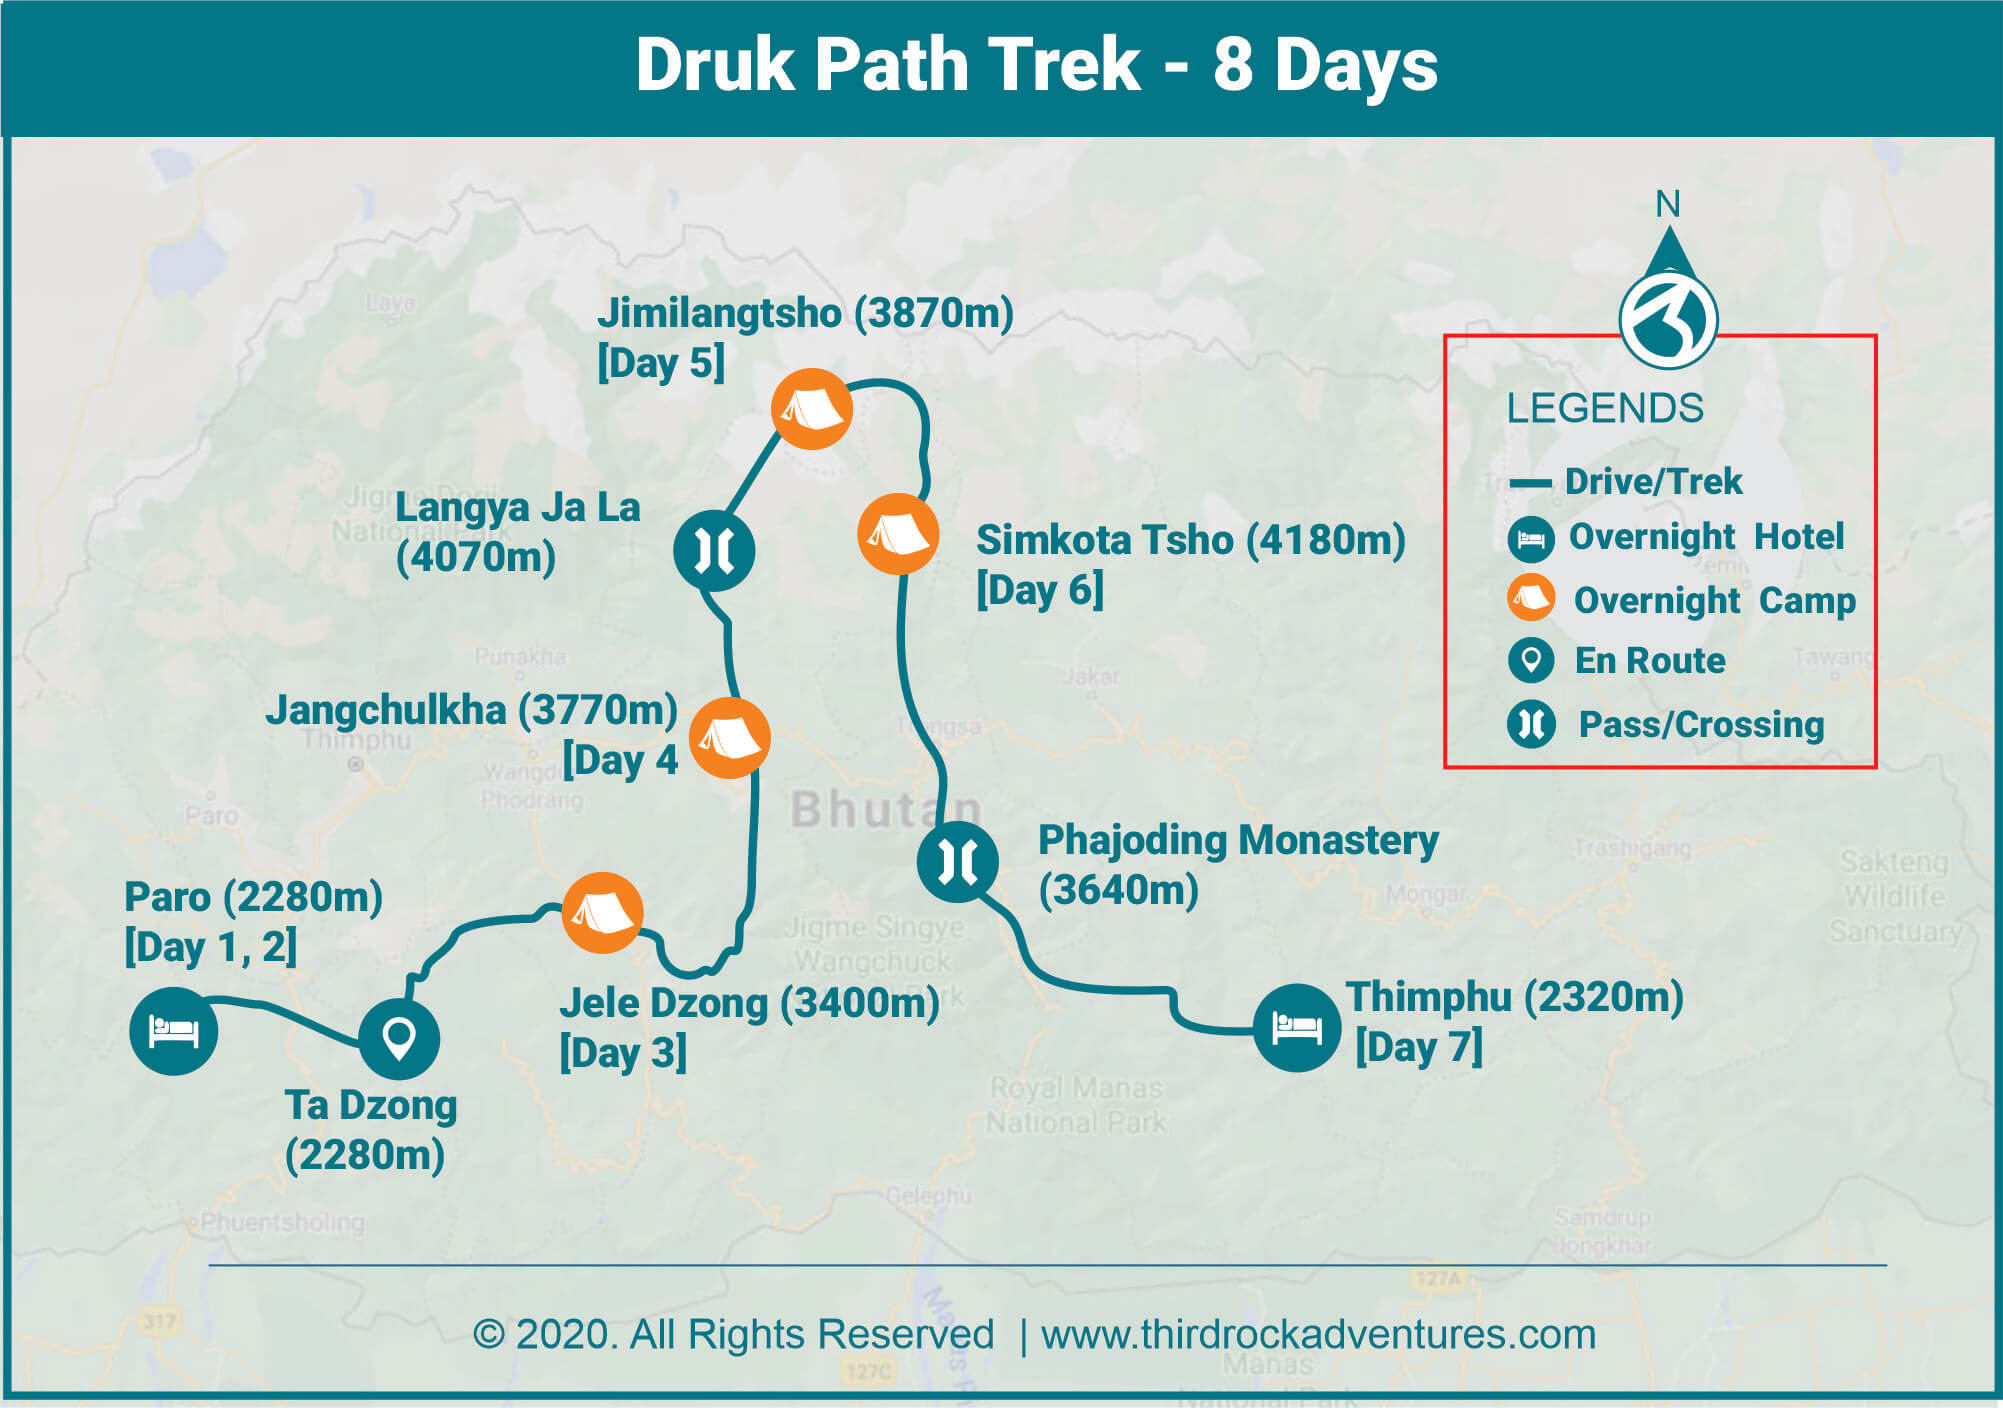 Druk Path Trek 8 Days Route Map